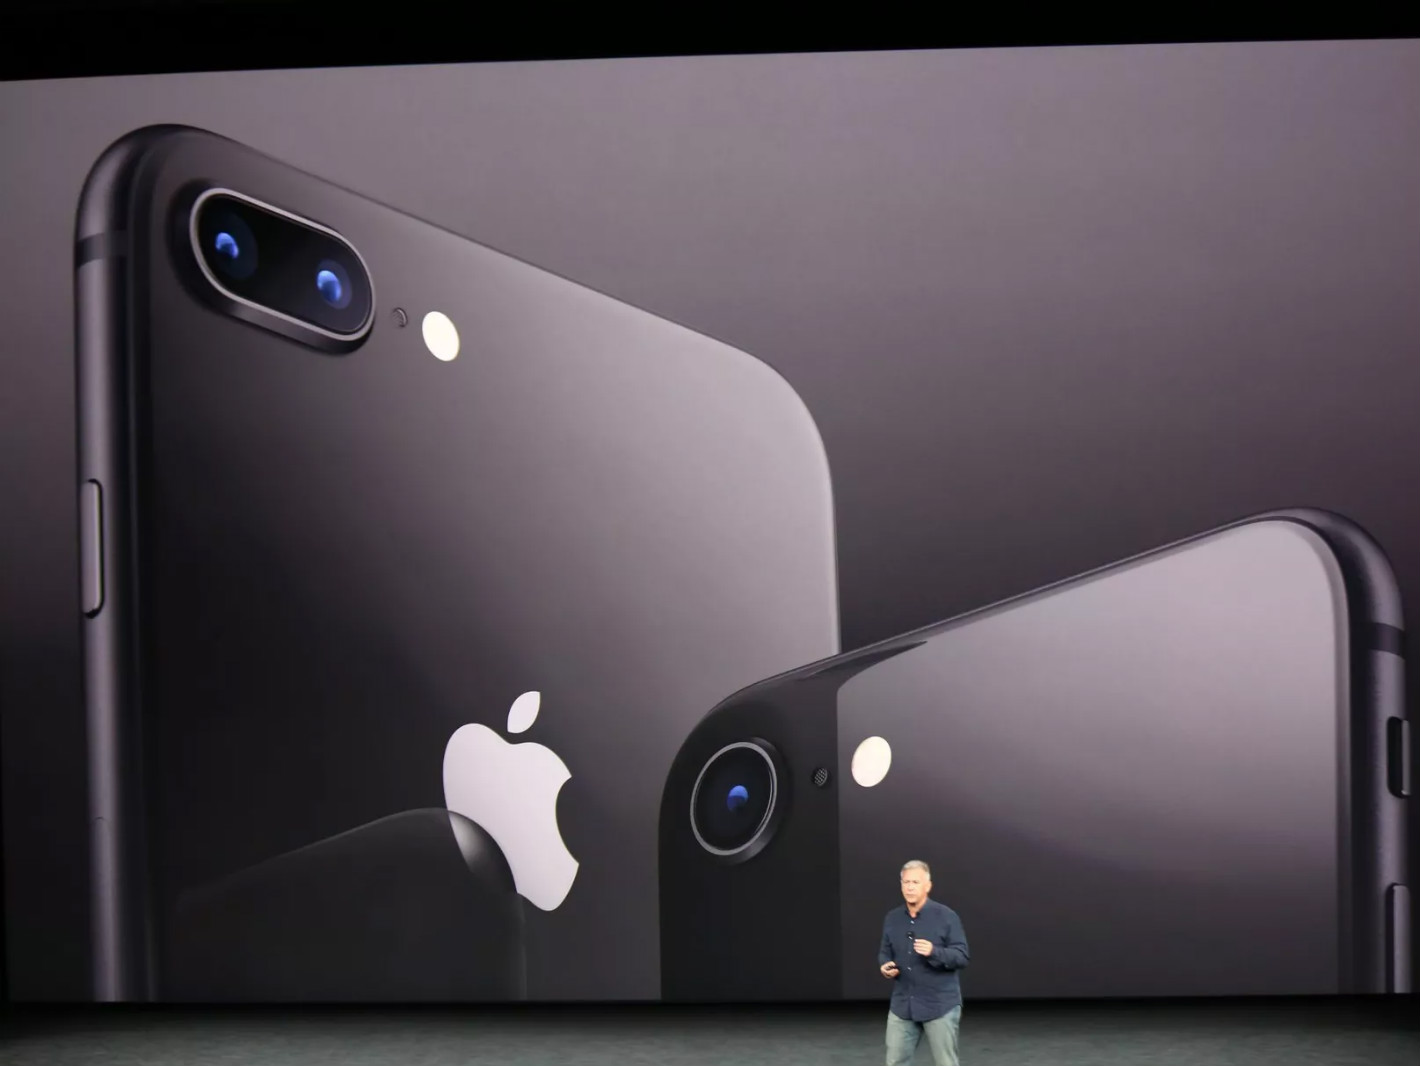 iPhone 8 and 8 Plus Announced with Glass Back